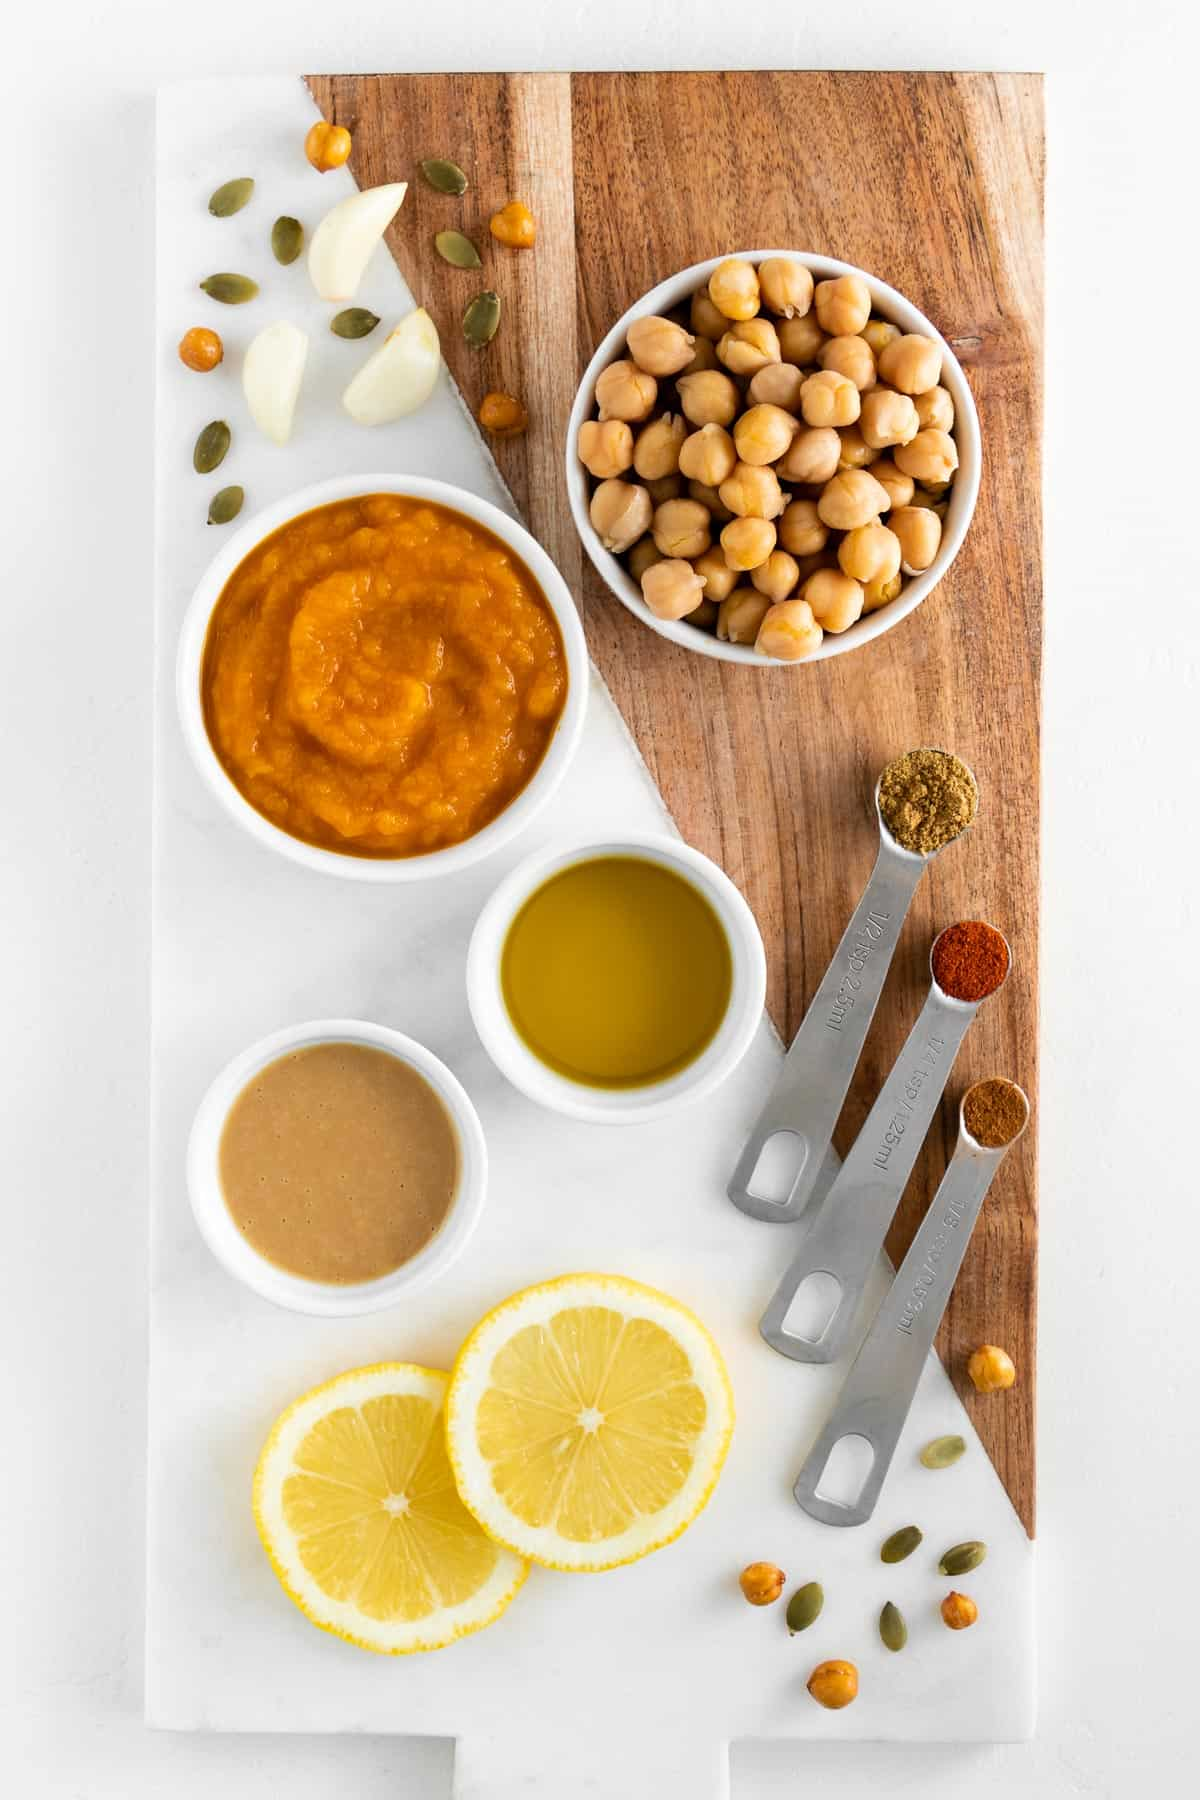 a marble and wood board topped with bowls of chickpeas, pumpkin puree, olive oil, tahini, sliced lemon, cumin, paprika, and cinnamon